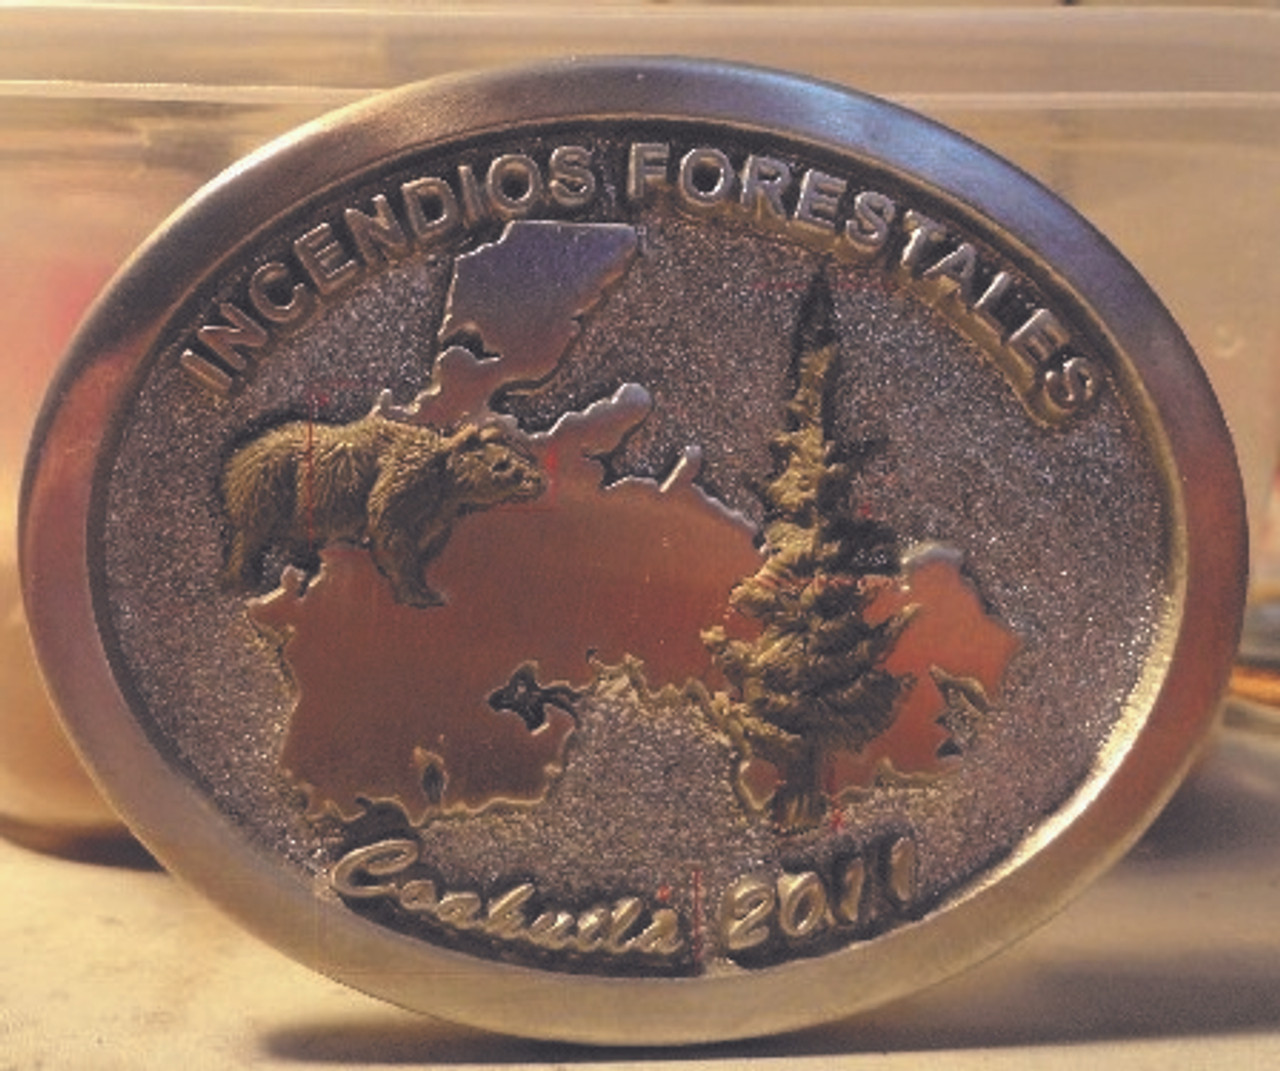 Incendios Forestales Coahula 2011 Buckle